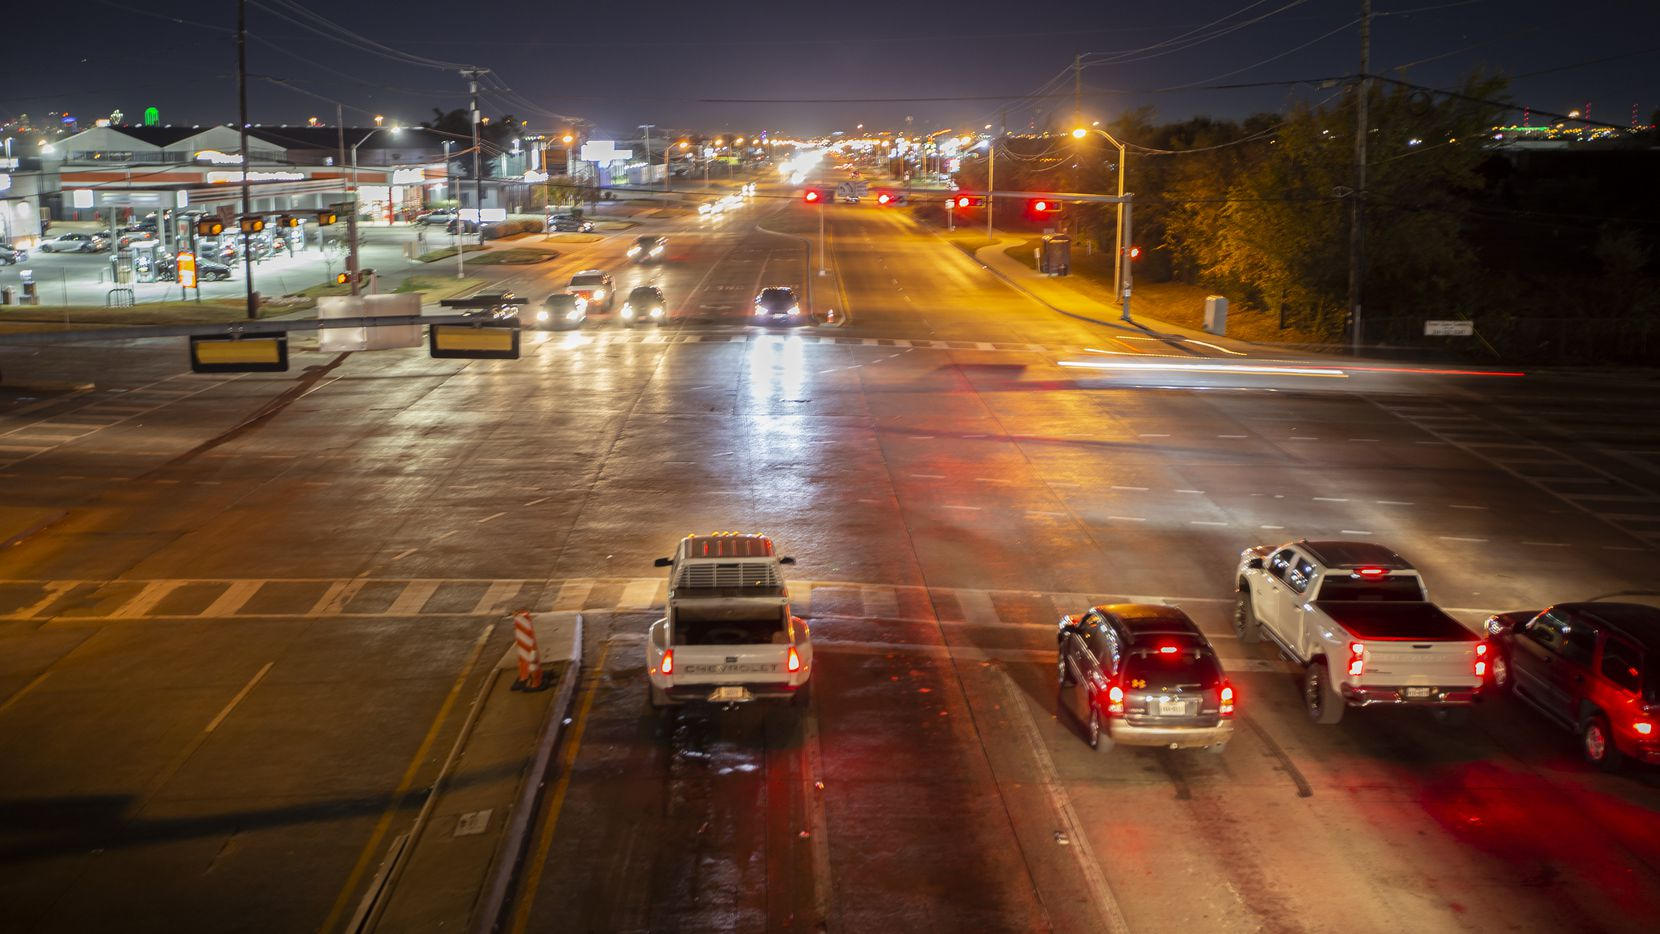 Looking South on Harry Hines Blvd at the intersection of Walnut Hill Lane in Dallas Sunday, December 6, 2020. DPD officials are looking to expand a cruising ordinance to the Harry Hines Boulevard to stop drivers who are cruising in areas that have prostitution. (Brandon Wade/Special Contributor)